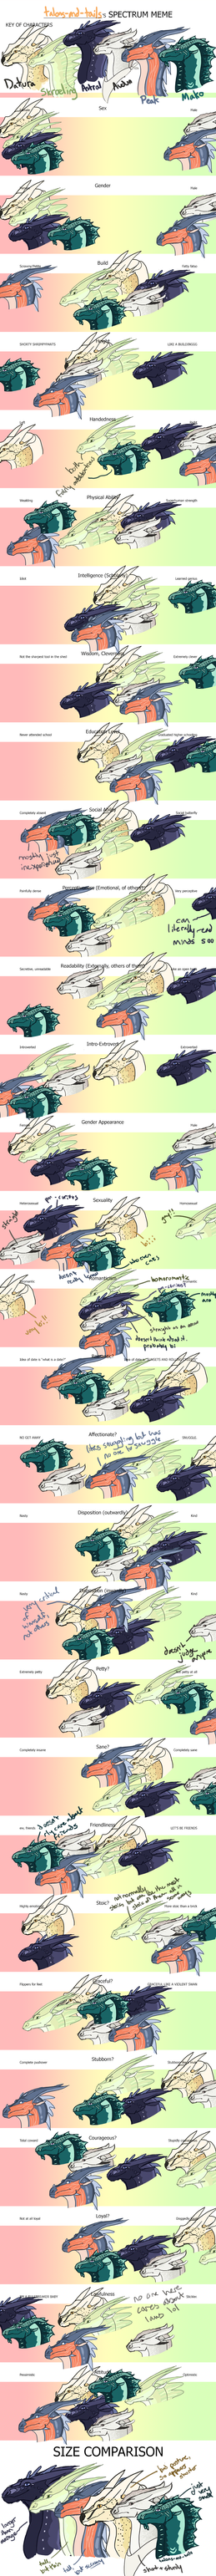 WoF OC Spectrum Meme by talons-and-tails